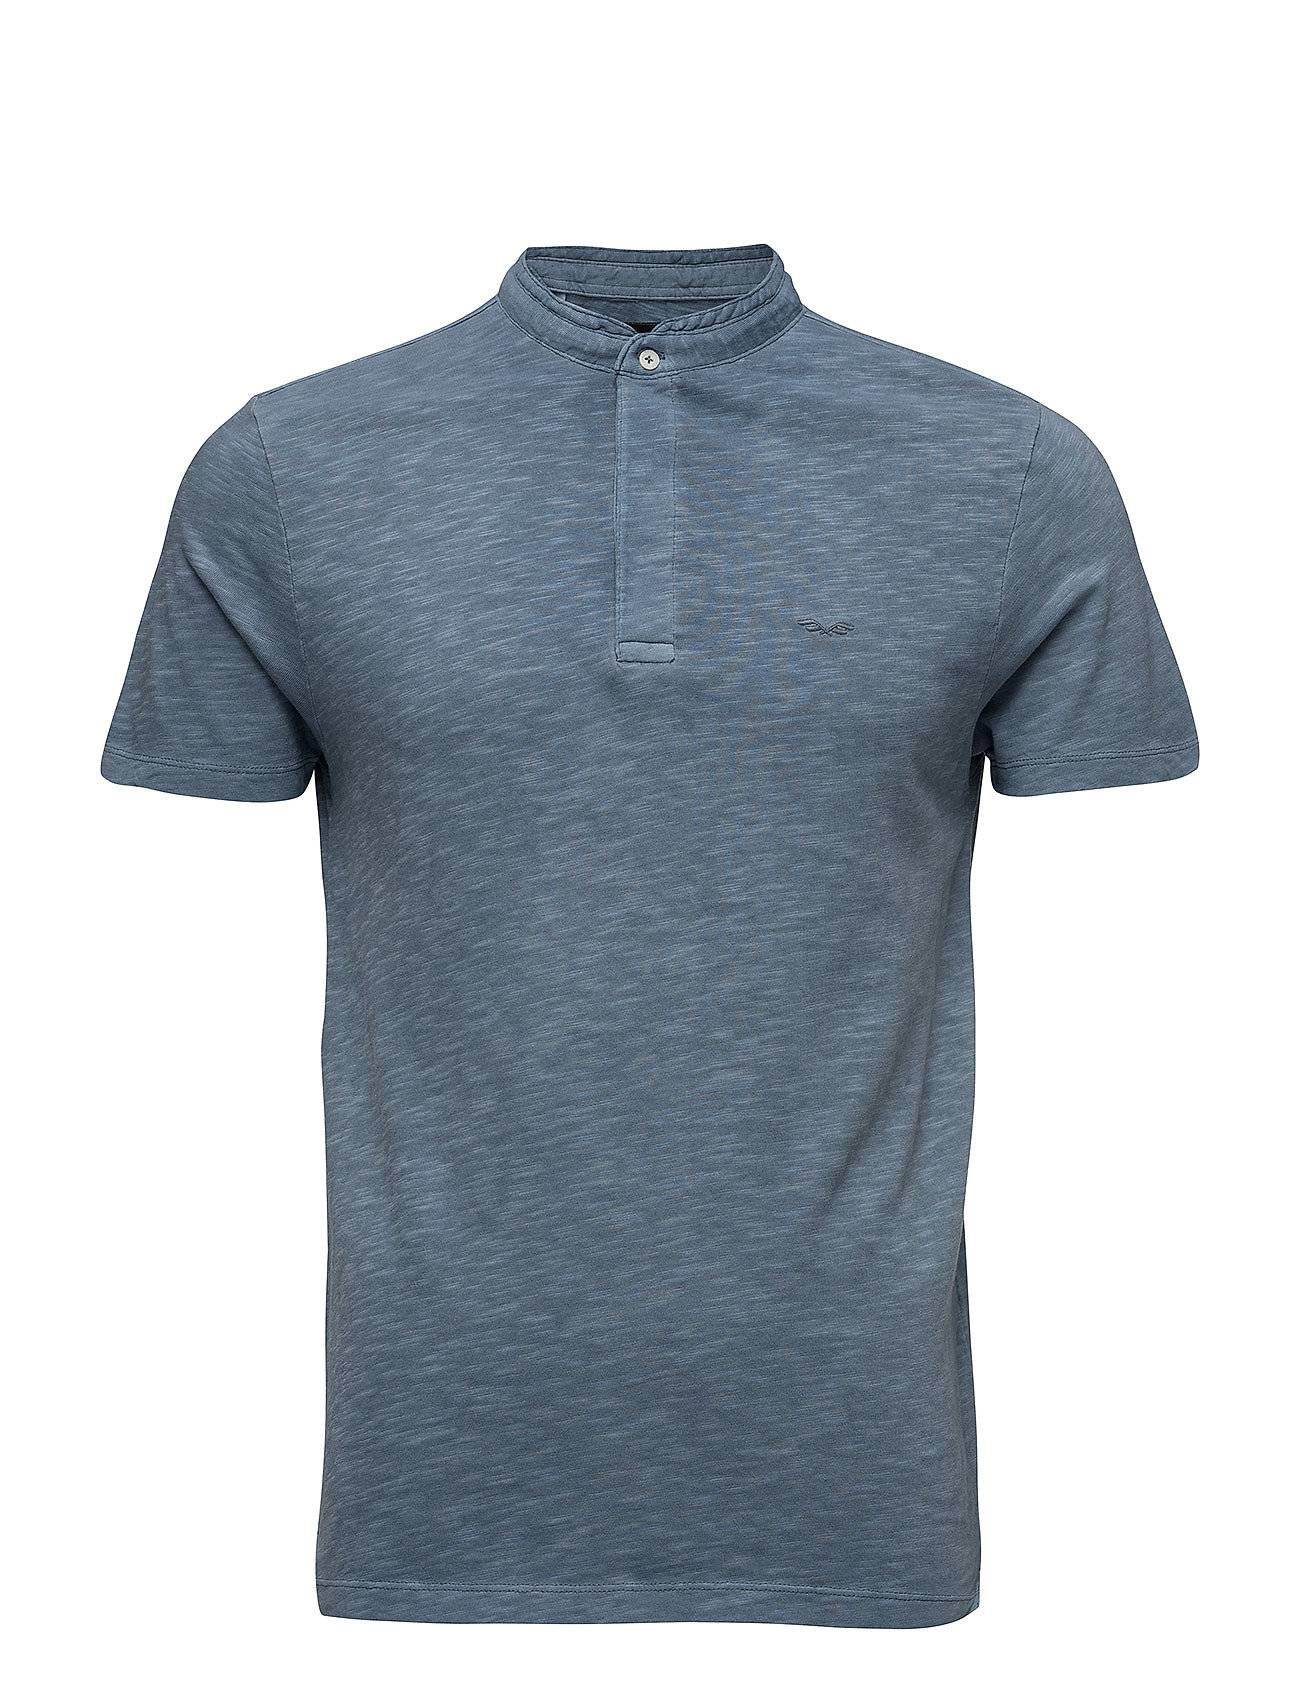 Selected Homme Abslub Ss Polo